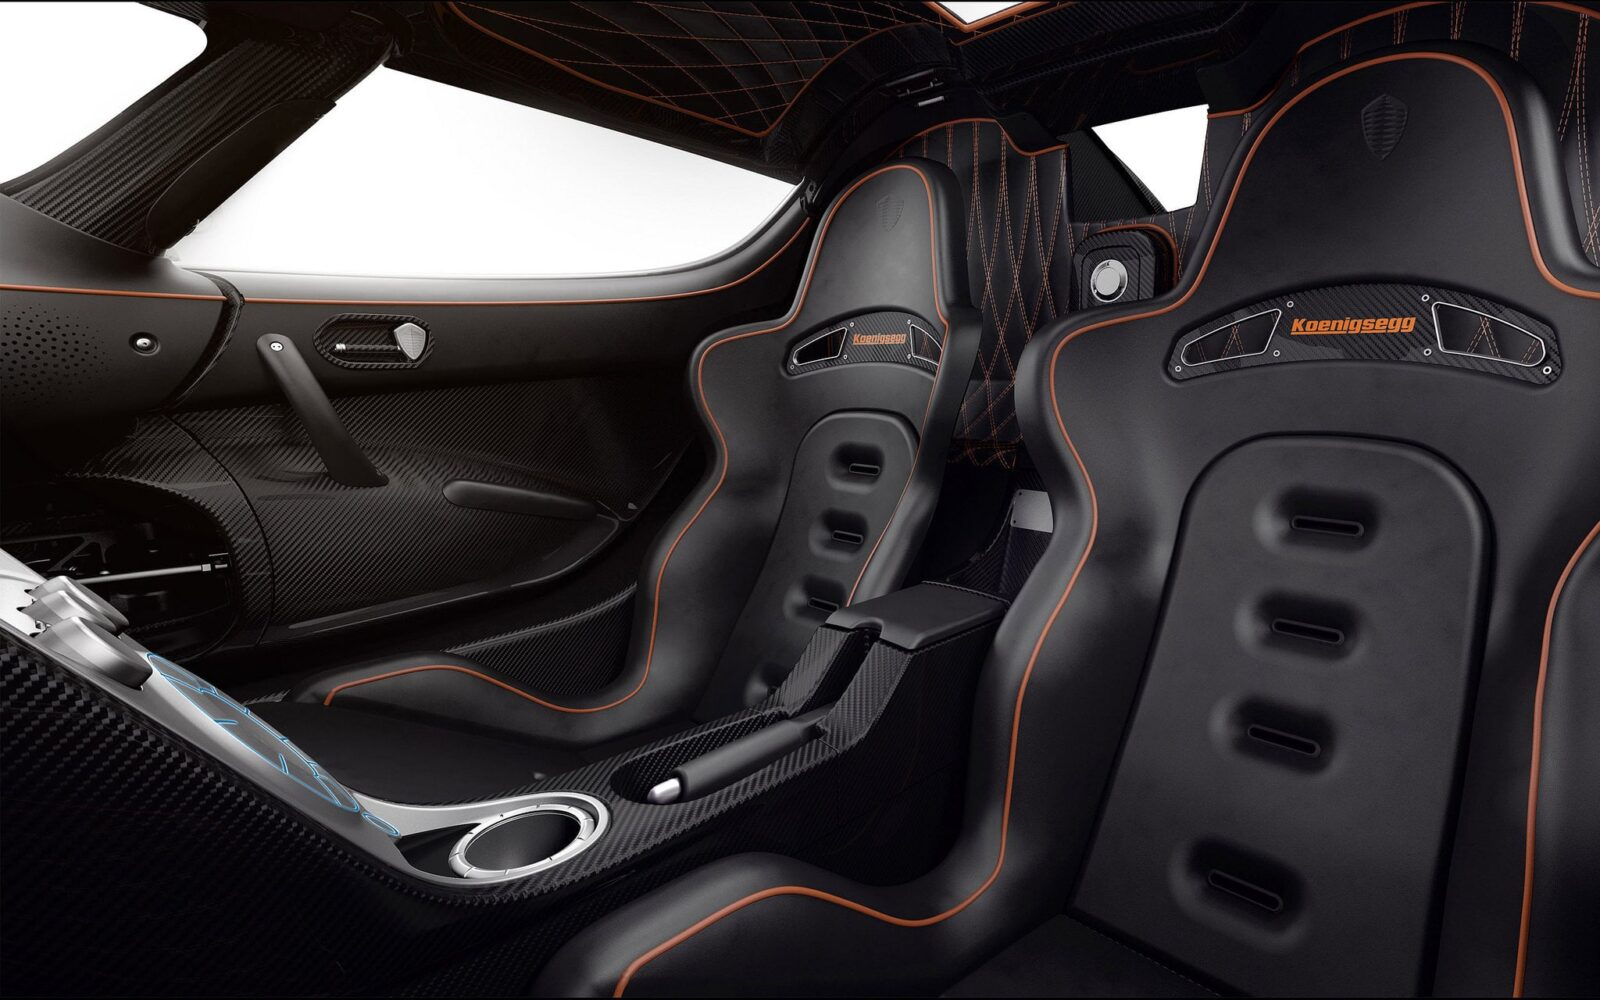 2016 Koenigsegg Agera RS interior photo